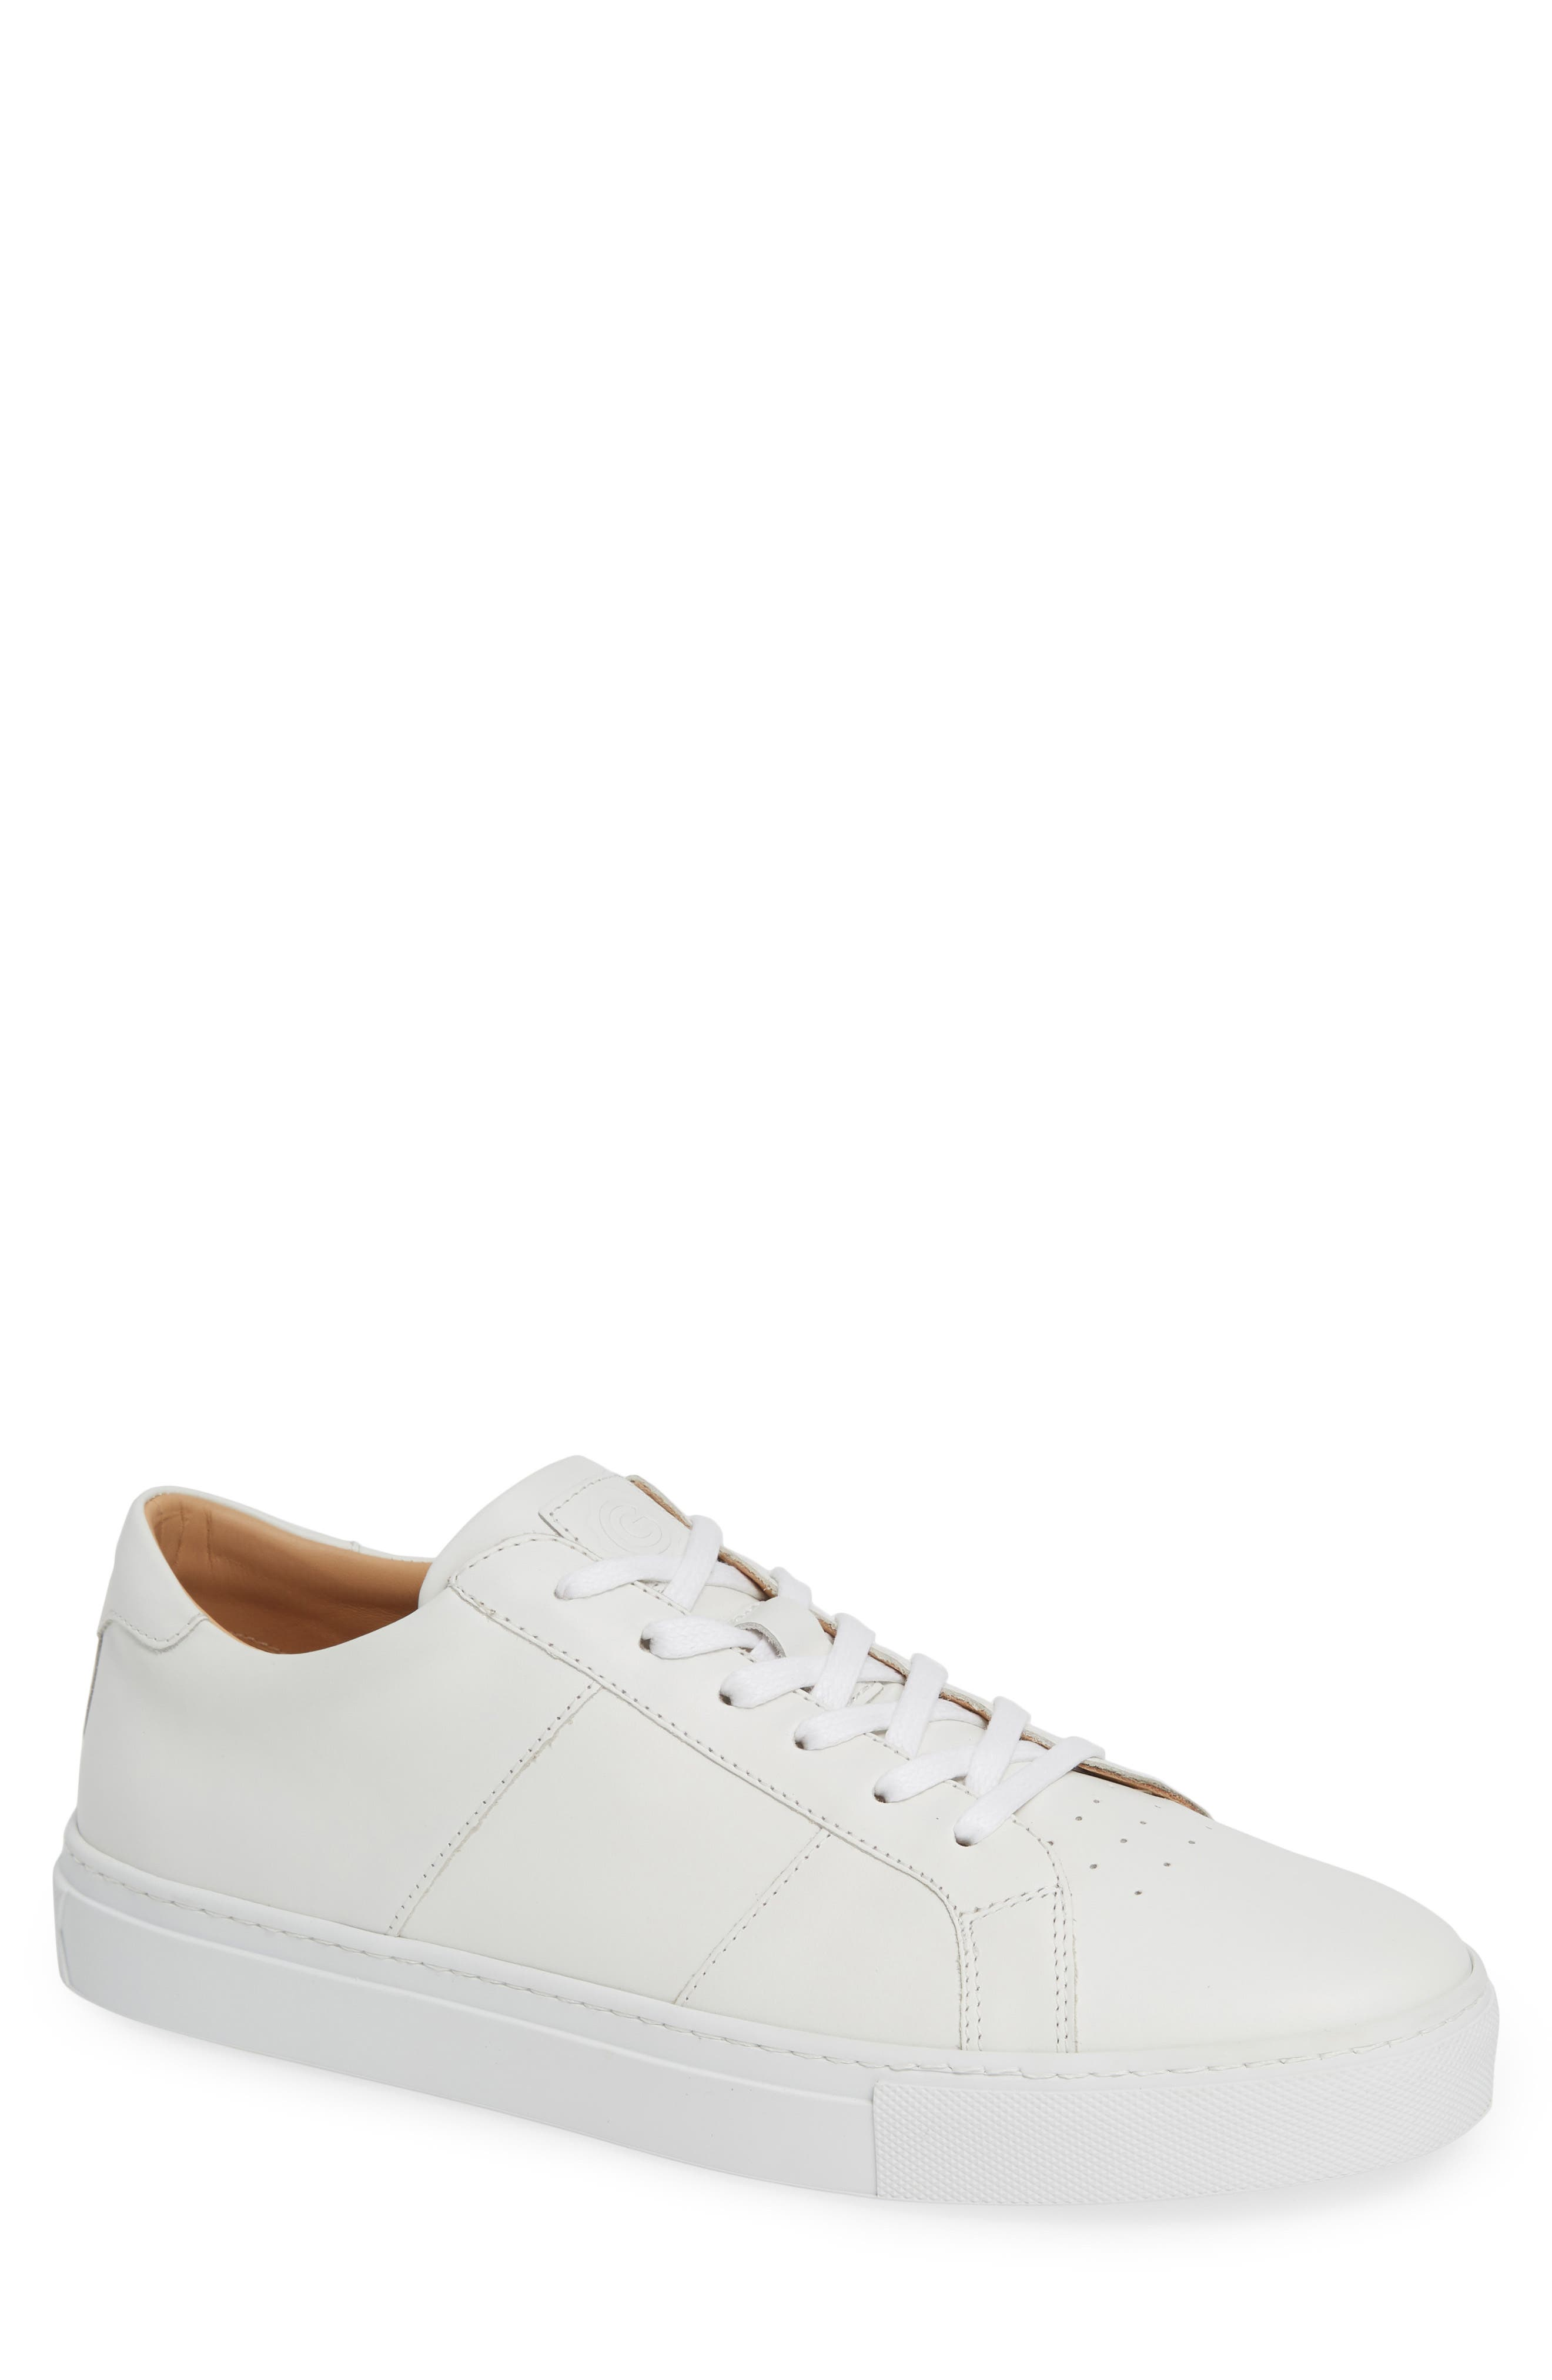 GREATS Royale Sneaker in White Flat Leather